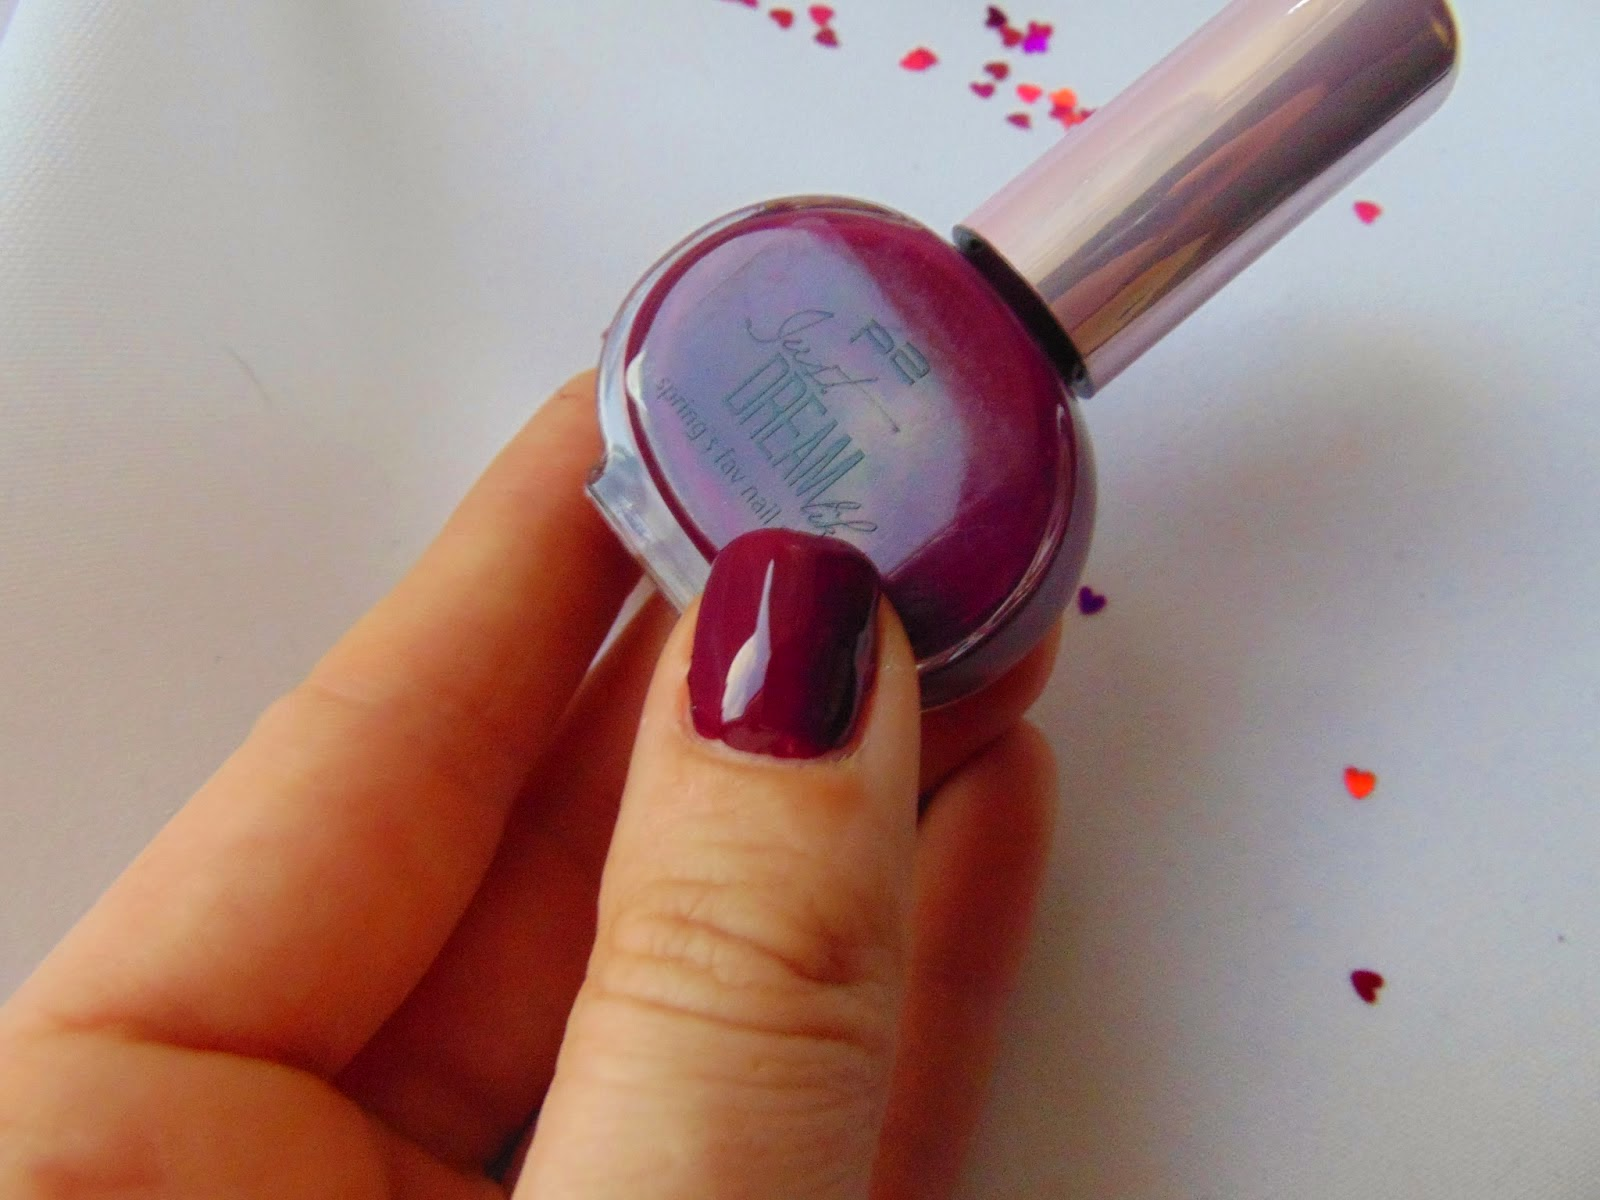 p2 Limited Edition: Just dream like - spring's fav nail polish - cassis passion Swatch - www.annitschkasblog.de